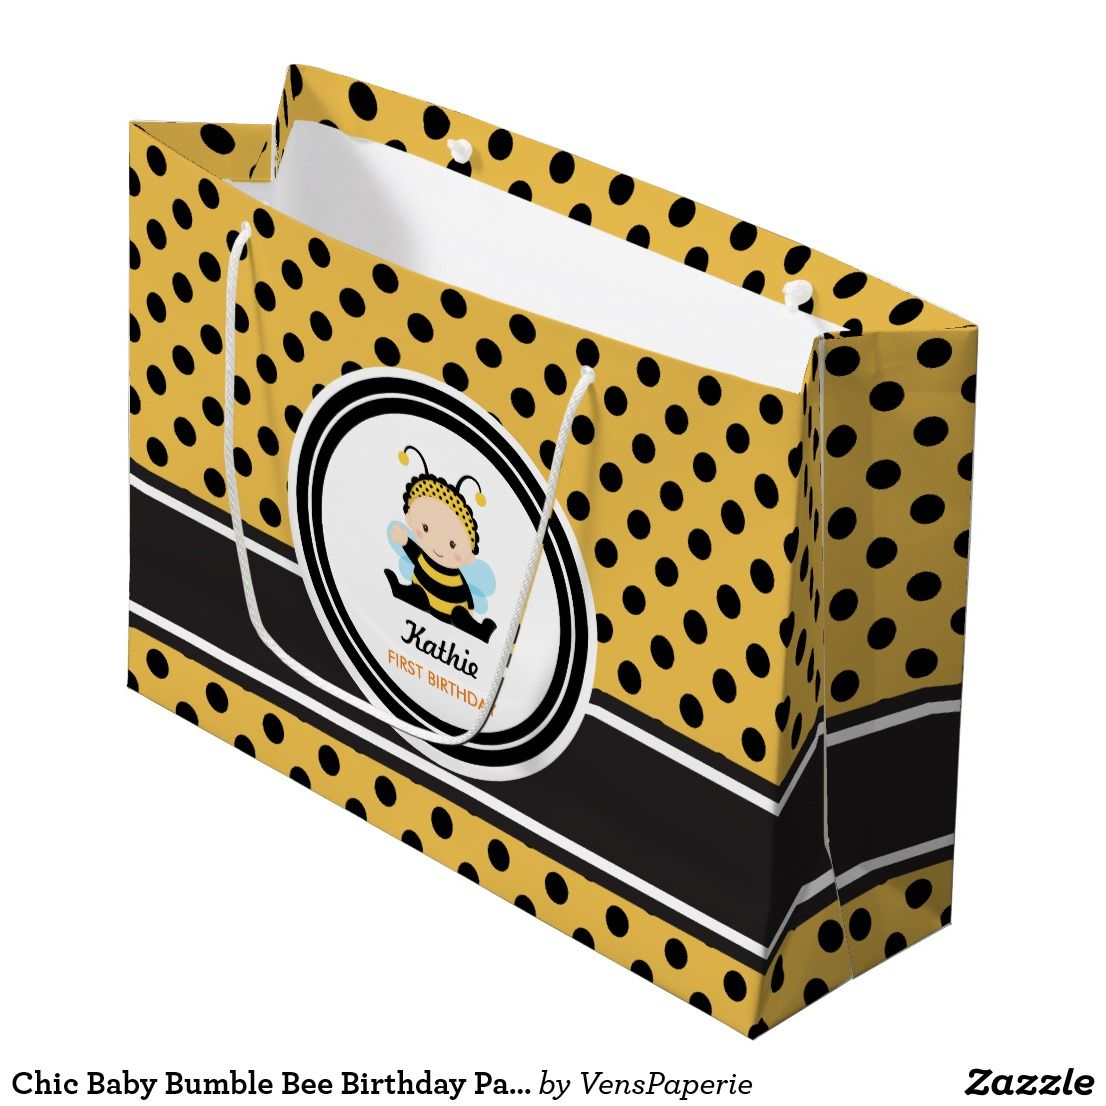 Chic baby bumble bee birthday party large gift bag